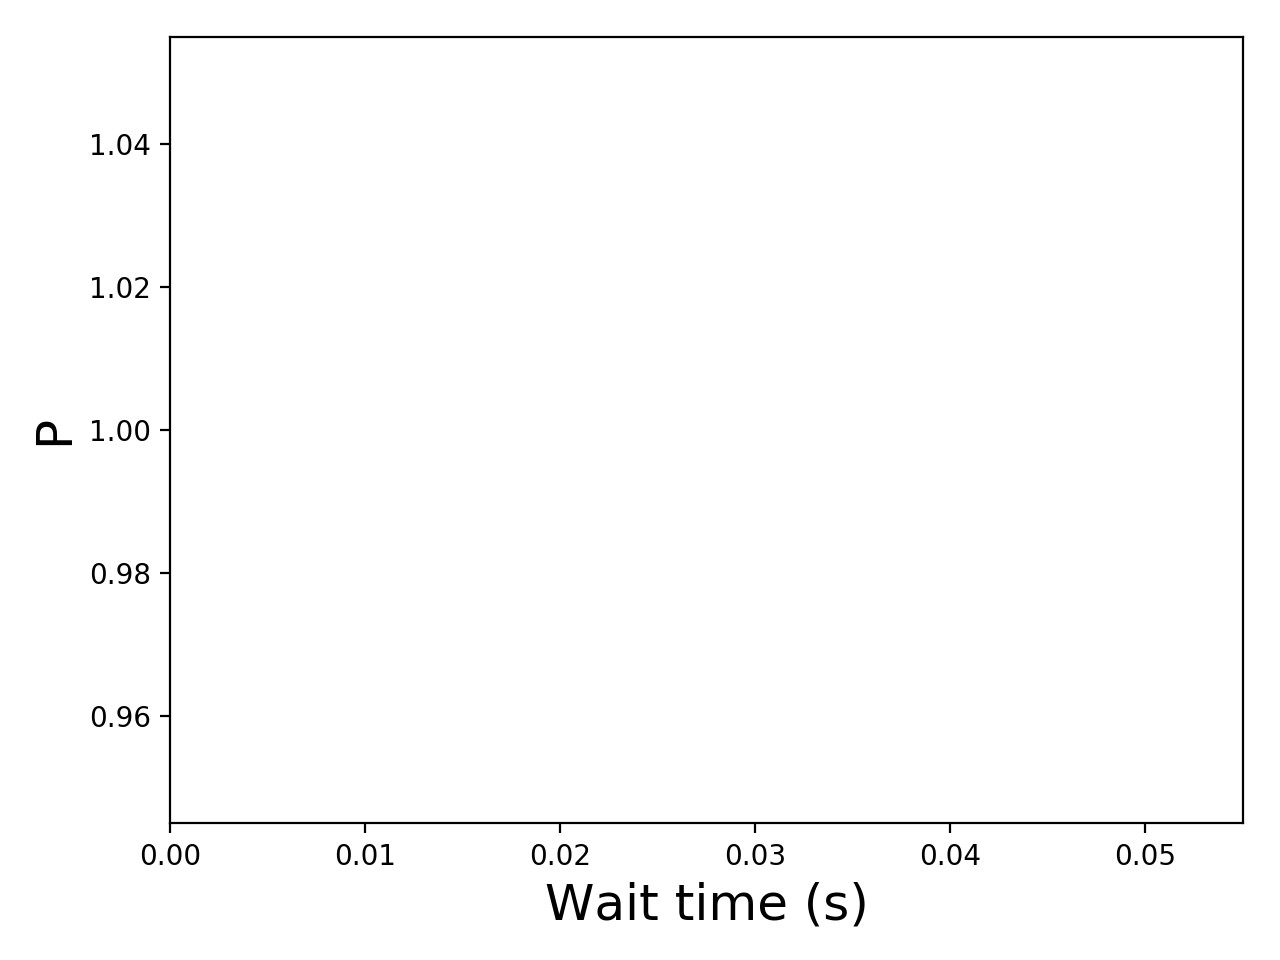 Task wait time CDF graph for the askalon-new_ee37 trace.